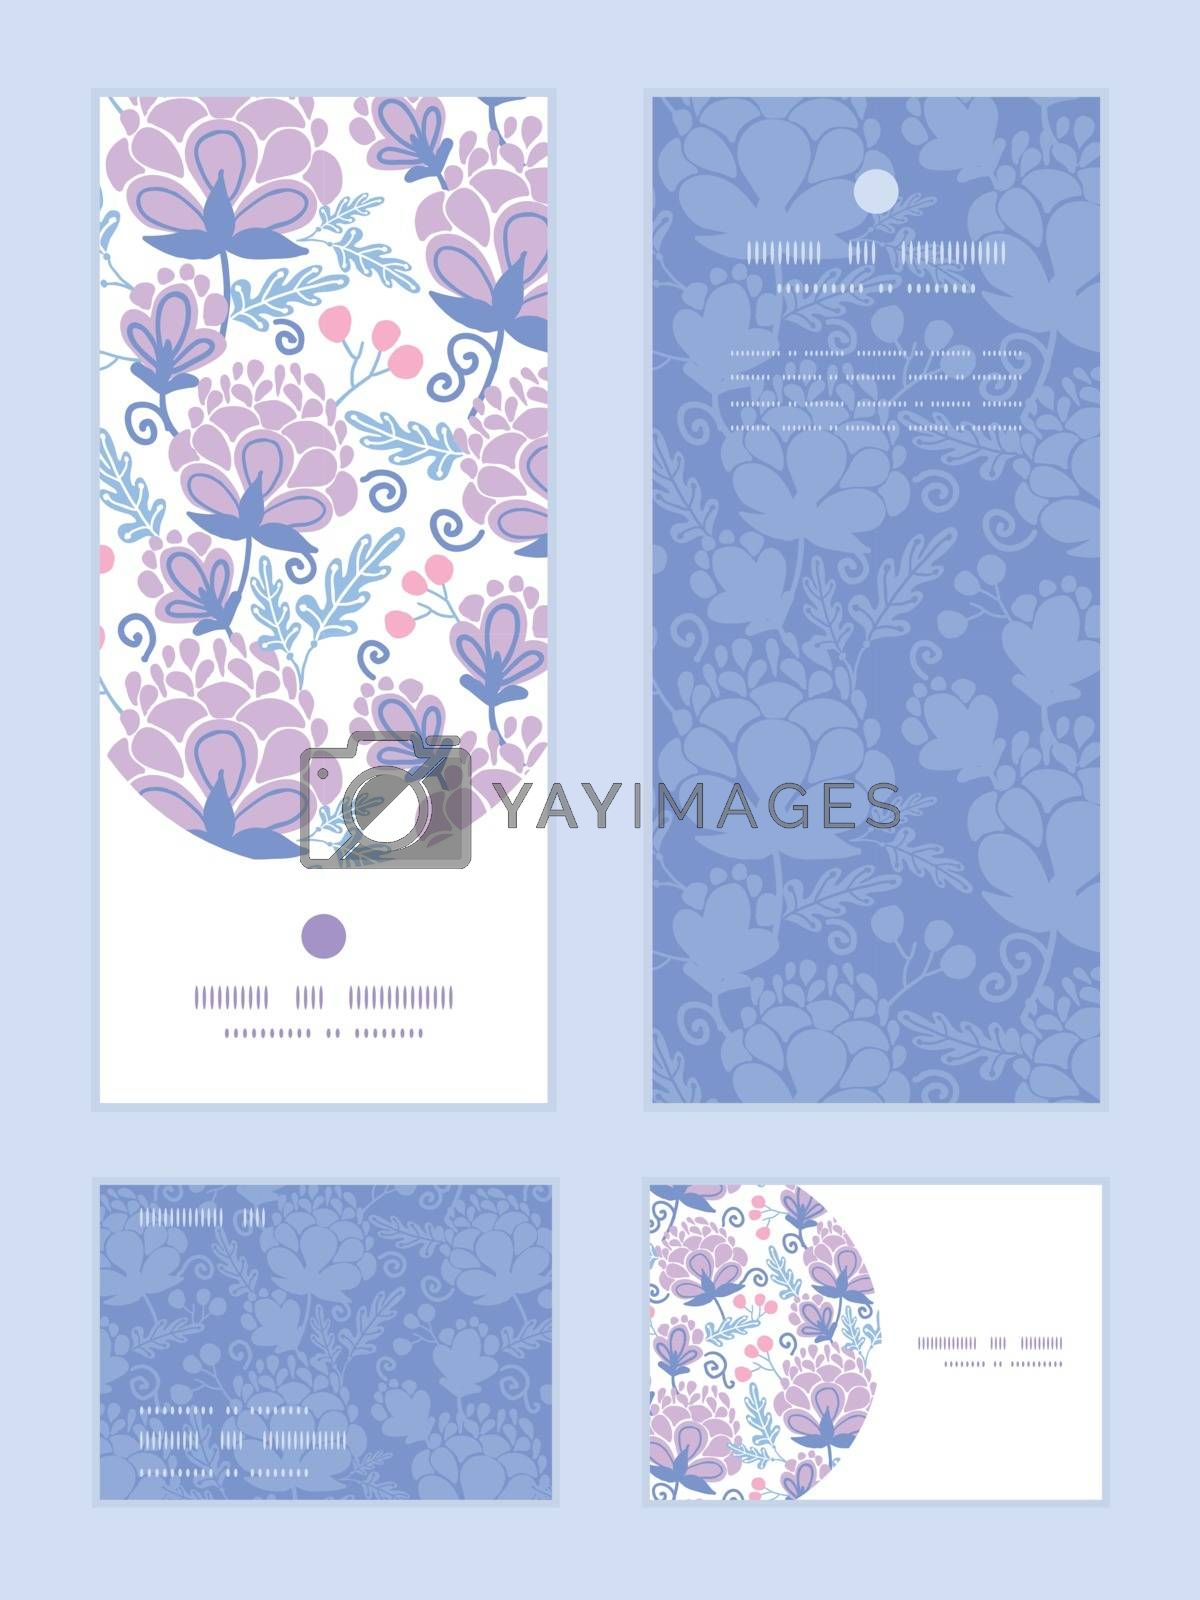 Royalty free image of Vector soft purple flowers vertical frame pattern invitation greeting, RSVP and thank you cards set by Oksancia